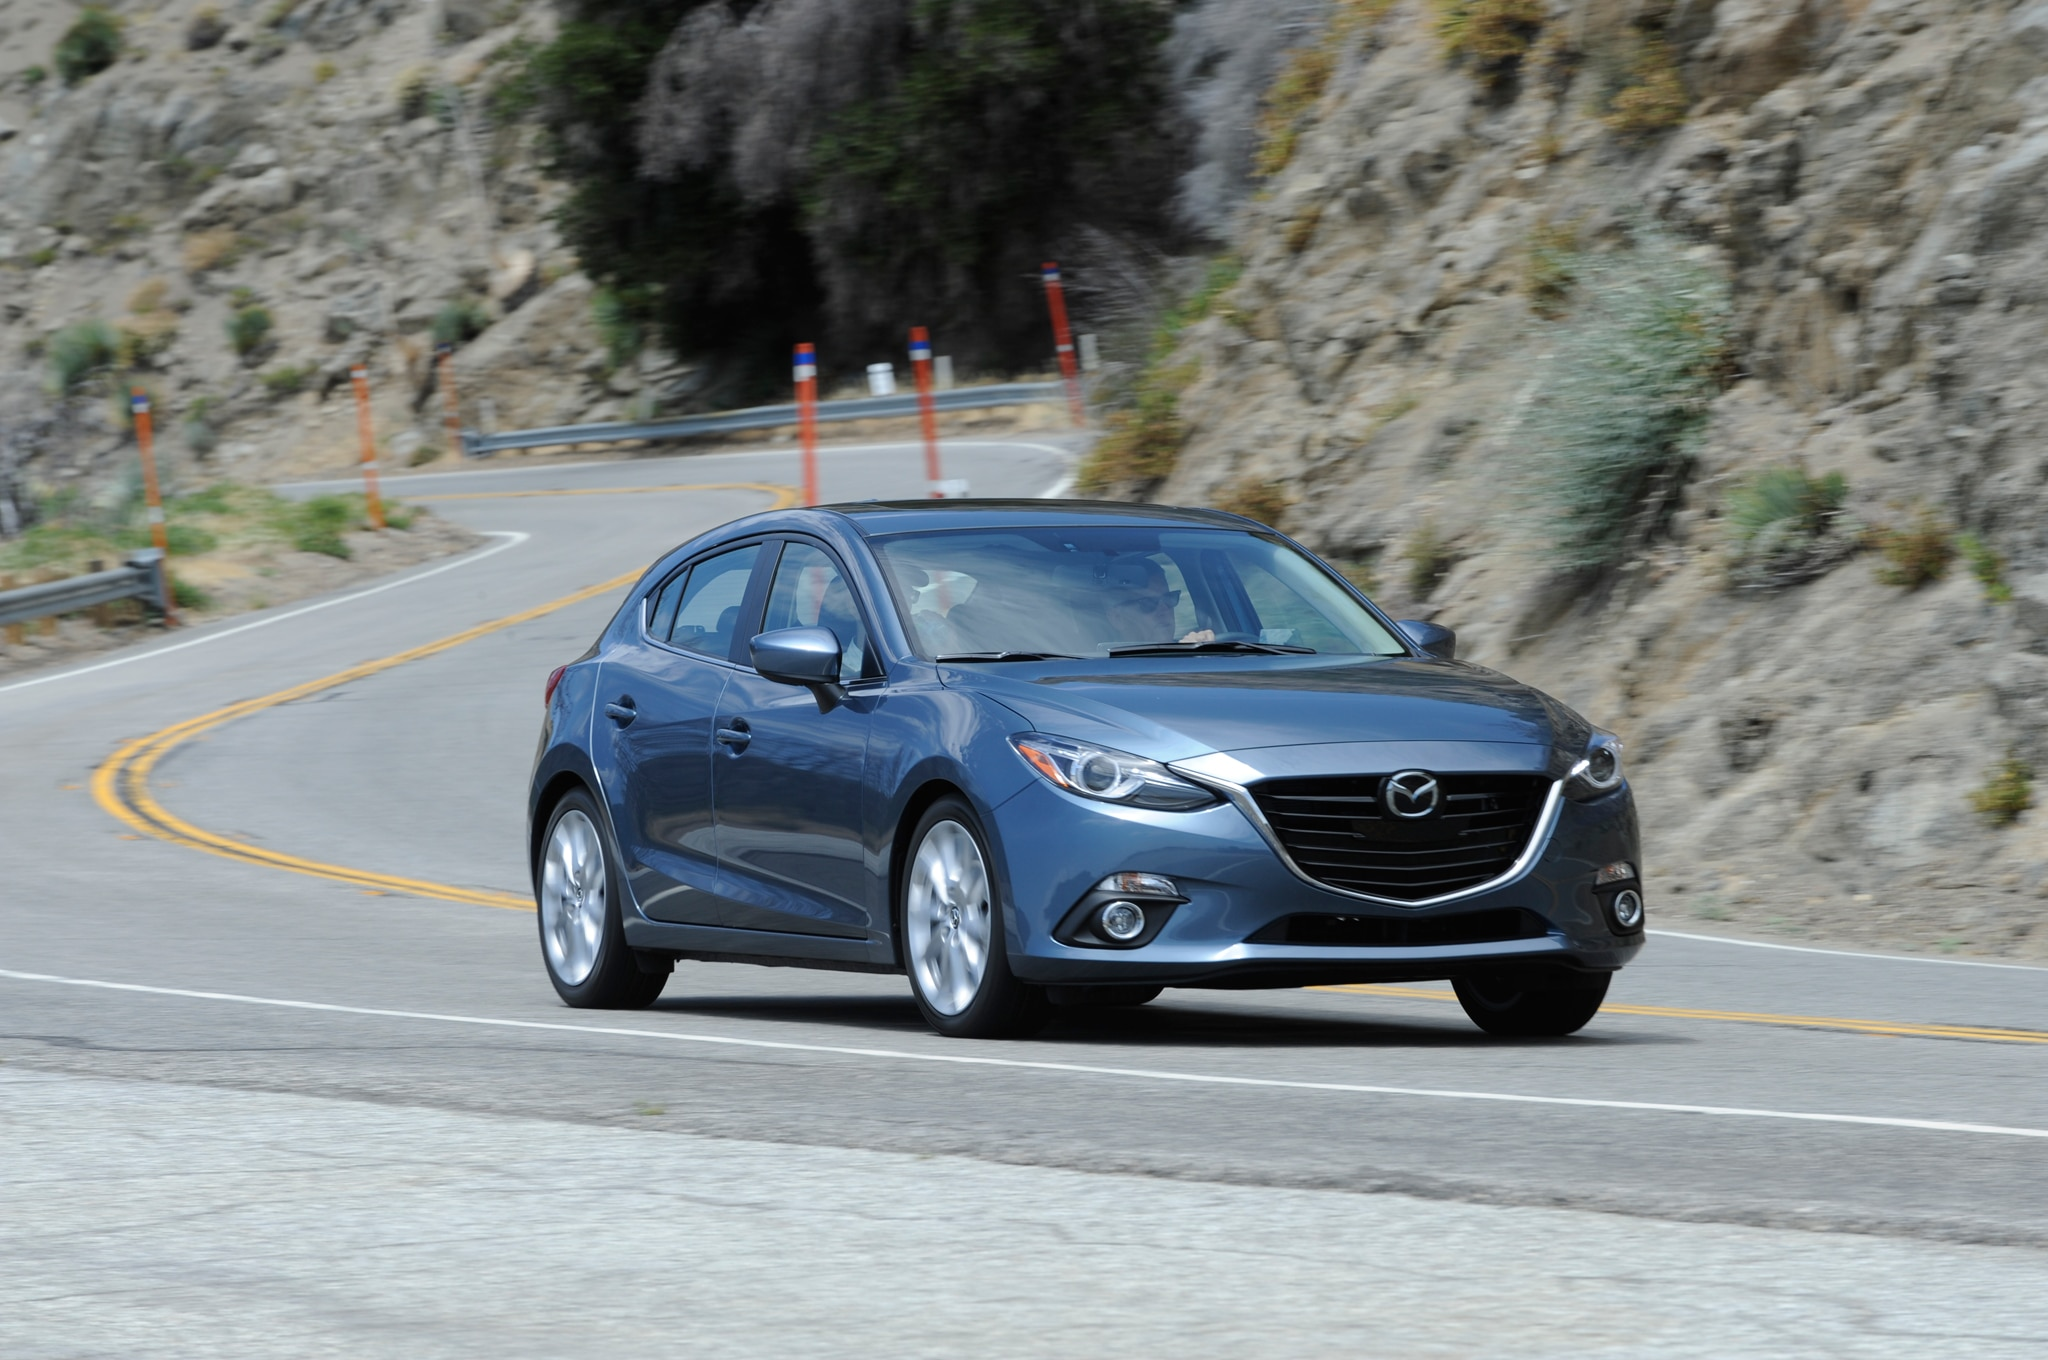 2014 Mazda3 Front Three Quarter Turn 021